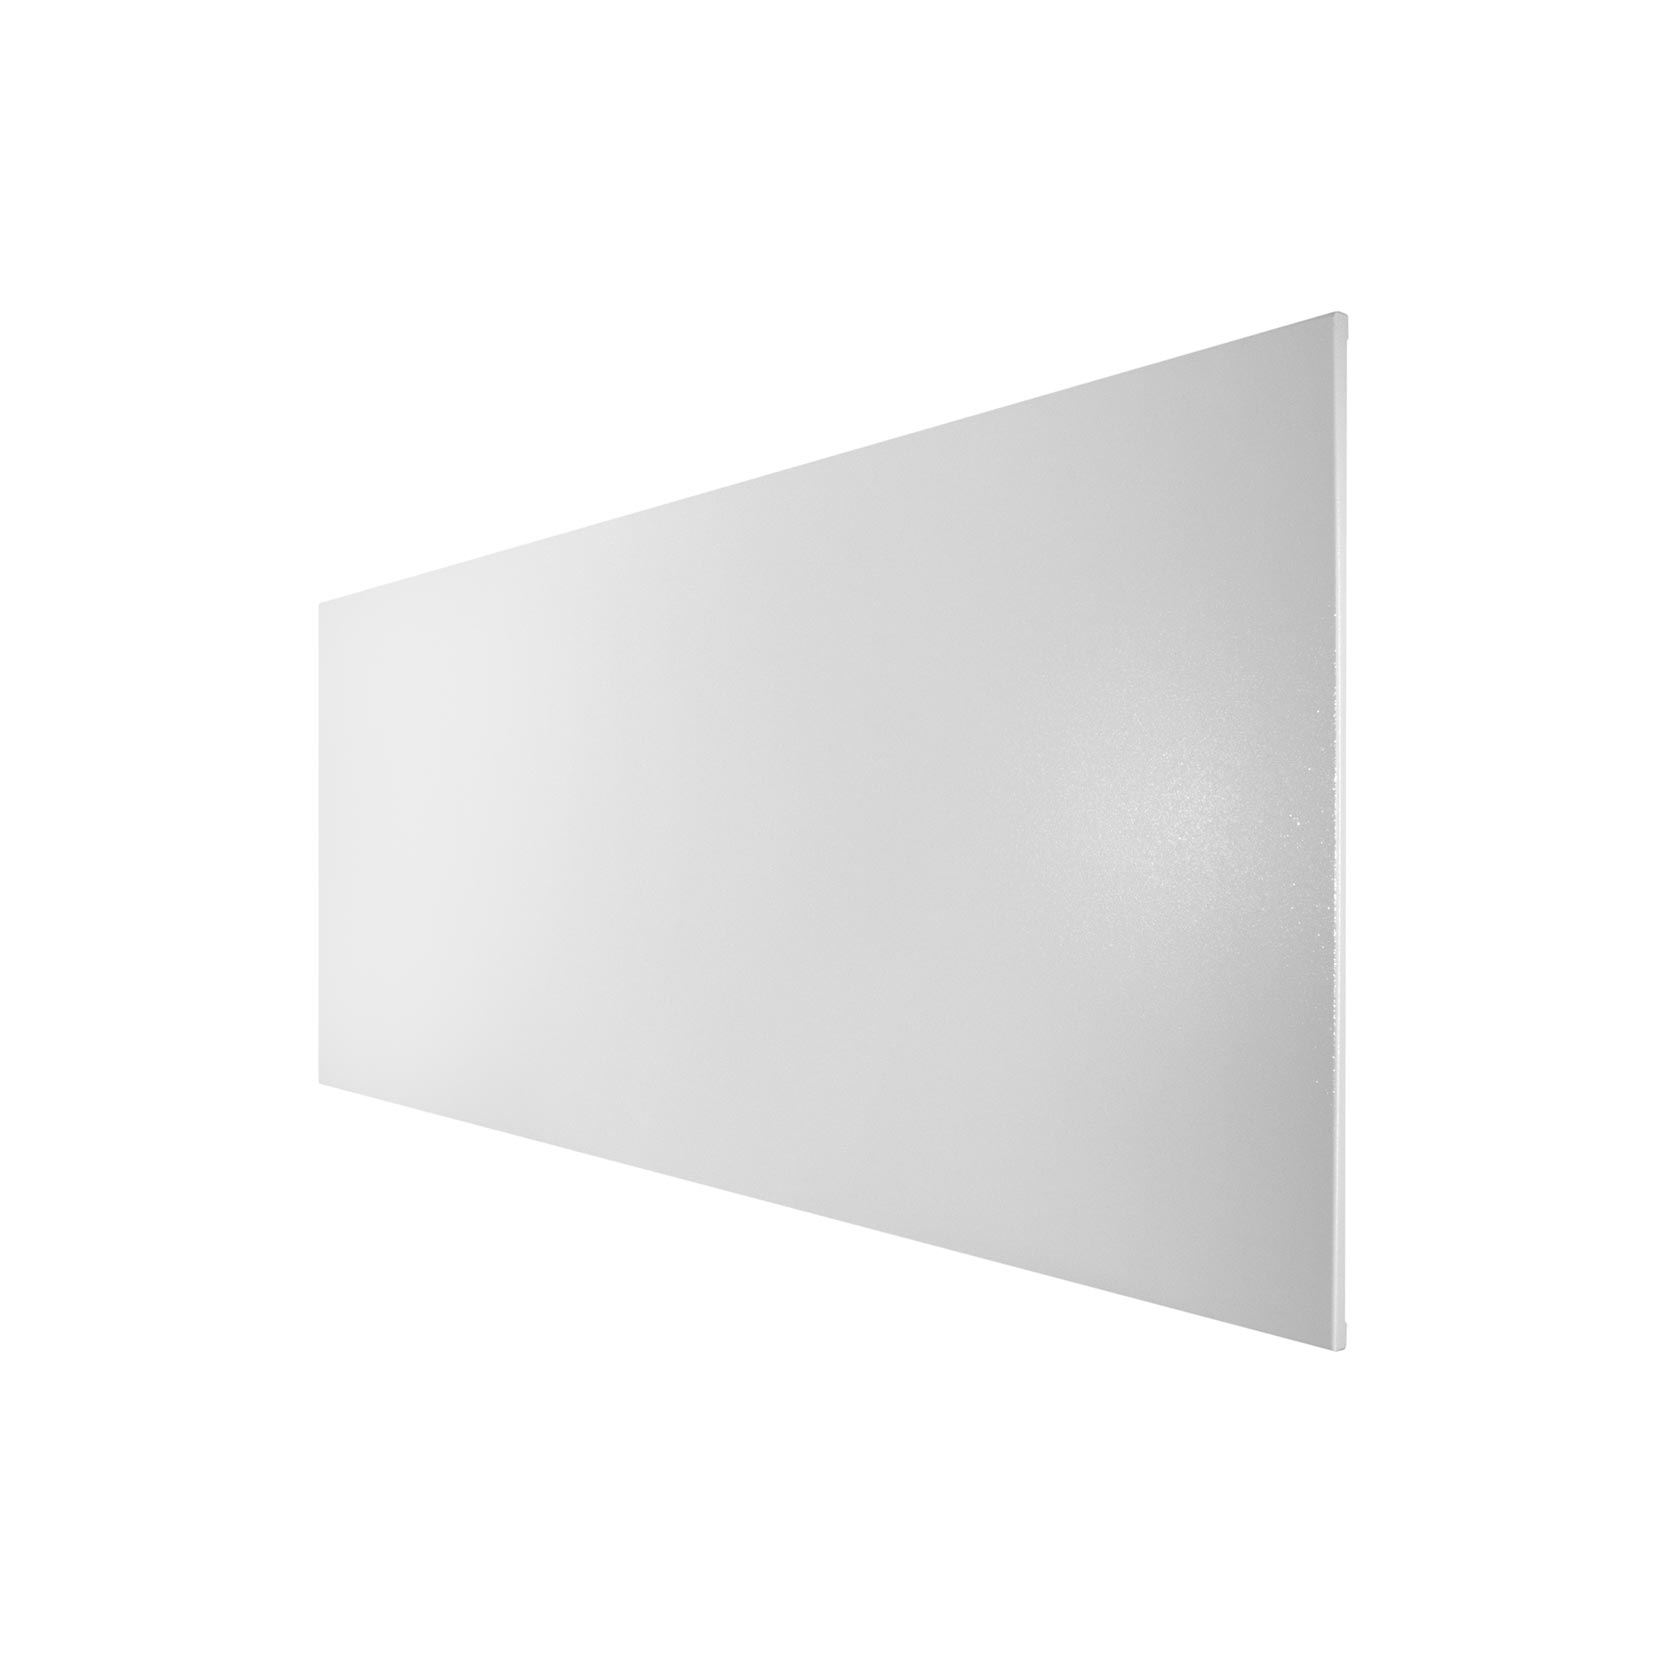 Technotherm Frameless - White 400mm